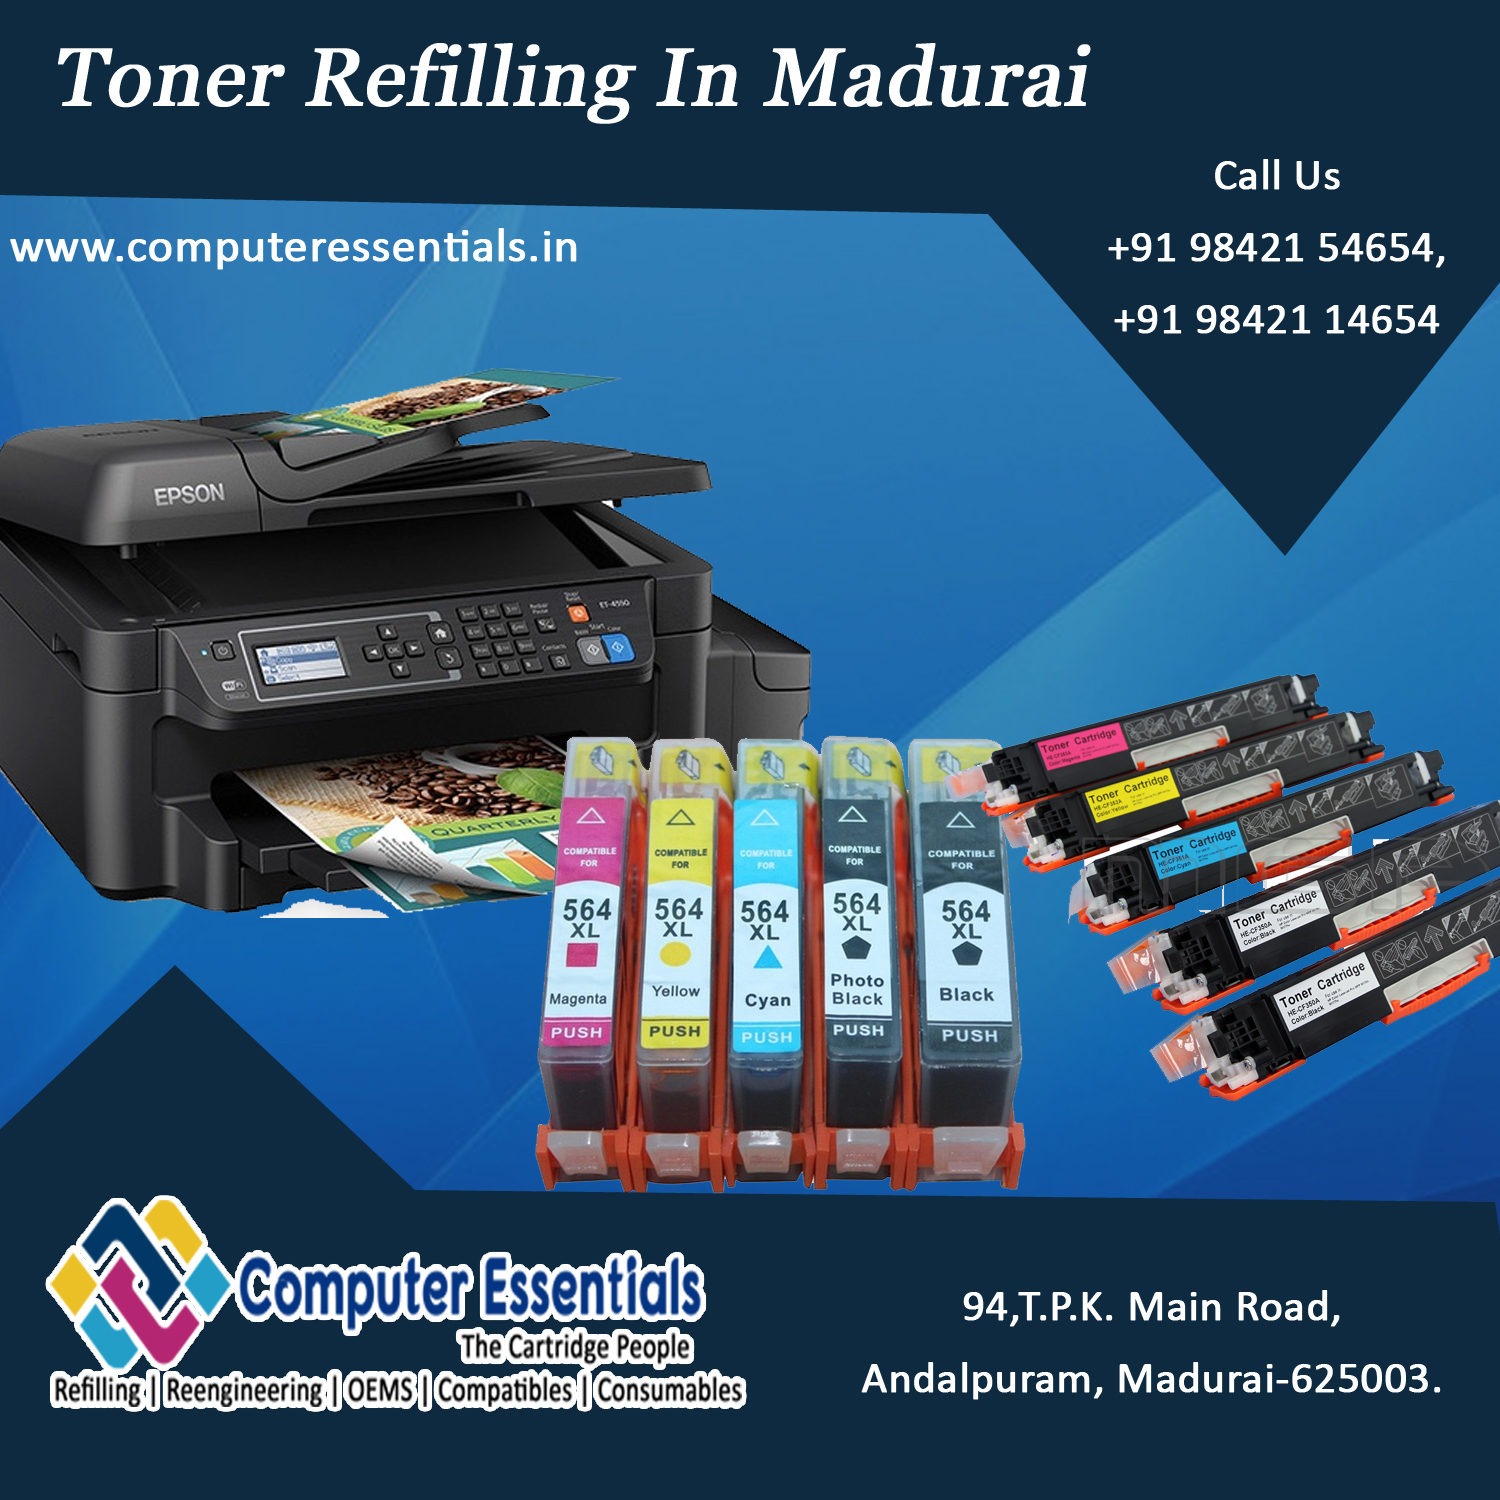 Toner refilling services best prices in madurai computer essentials toner refilling services best prices in madurai solutioingenieria Images